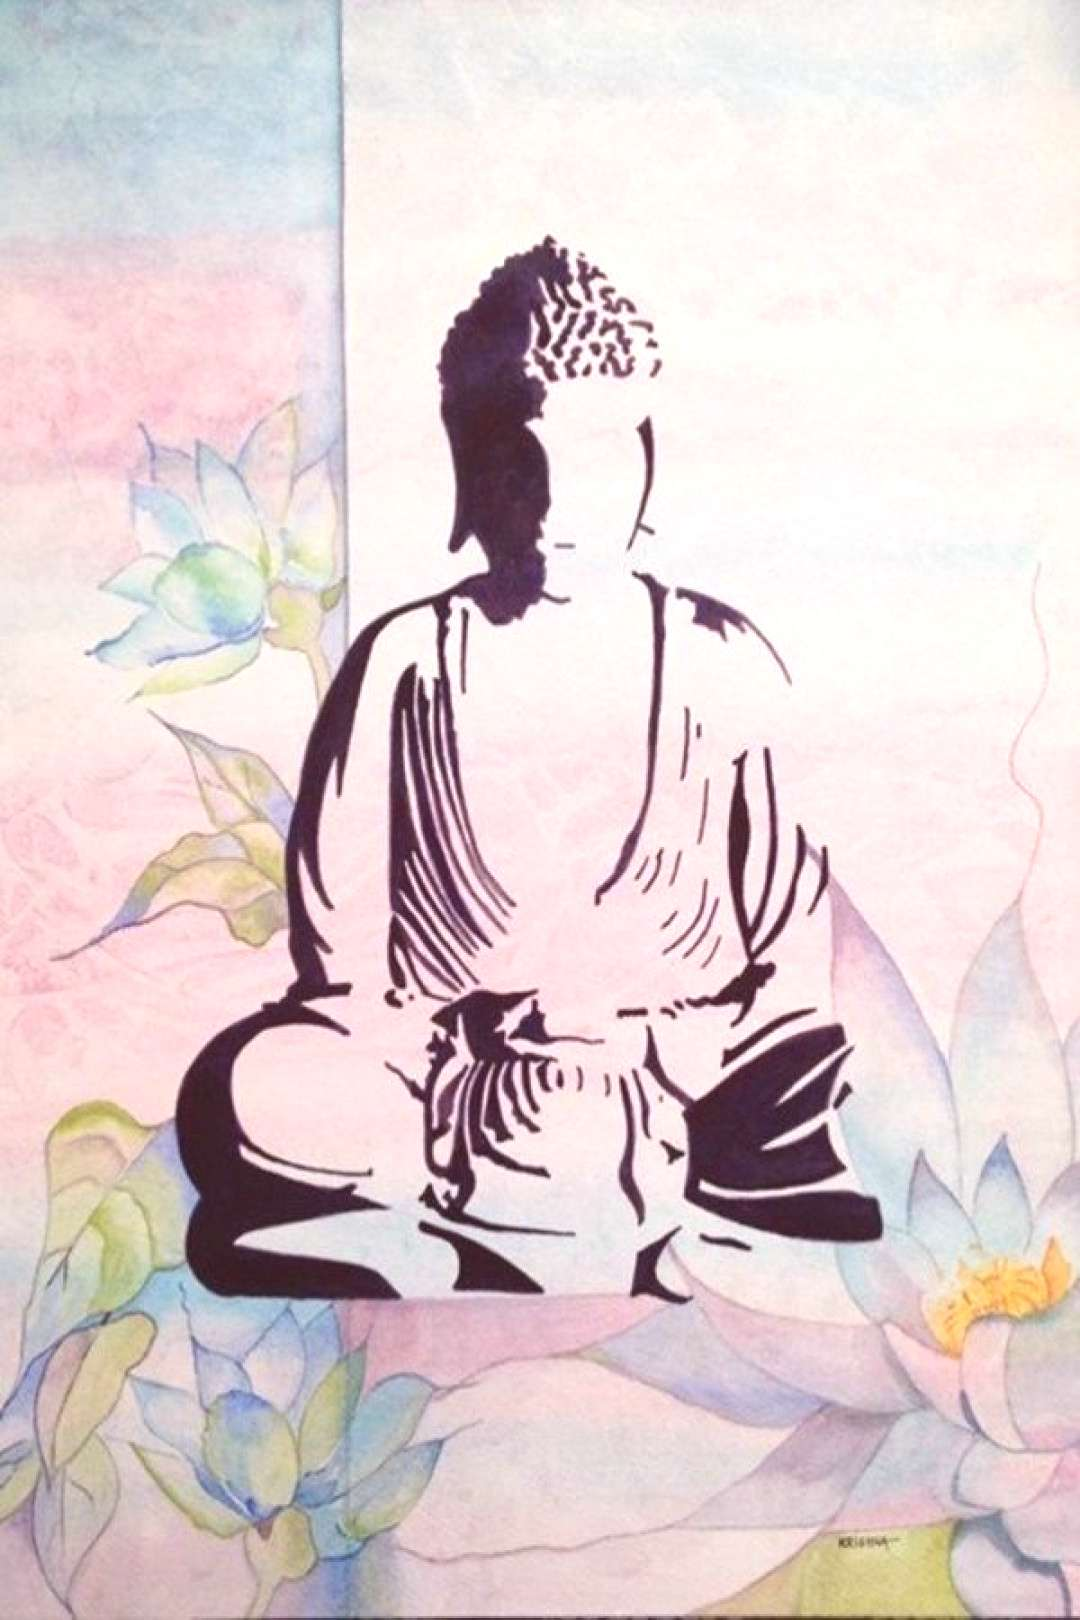 35 Peaceful Gautam Buddha Painting Ideas to Feel Calm – Buddha painting Buddha painting, Budd